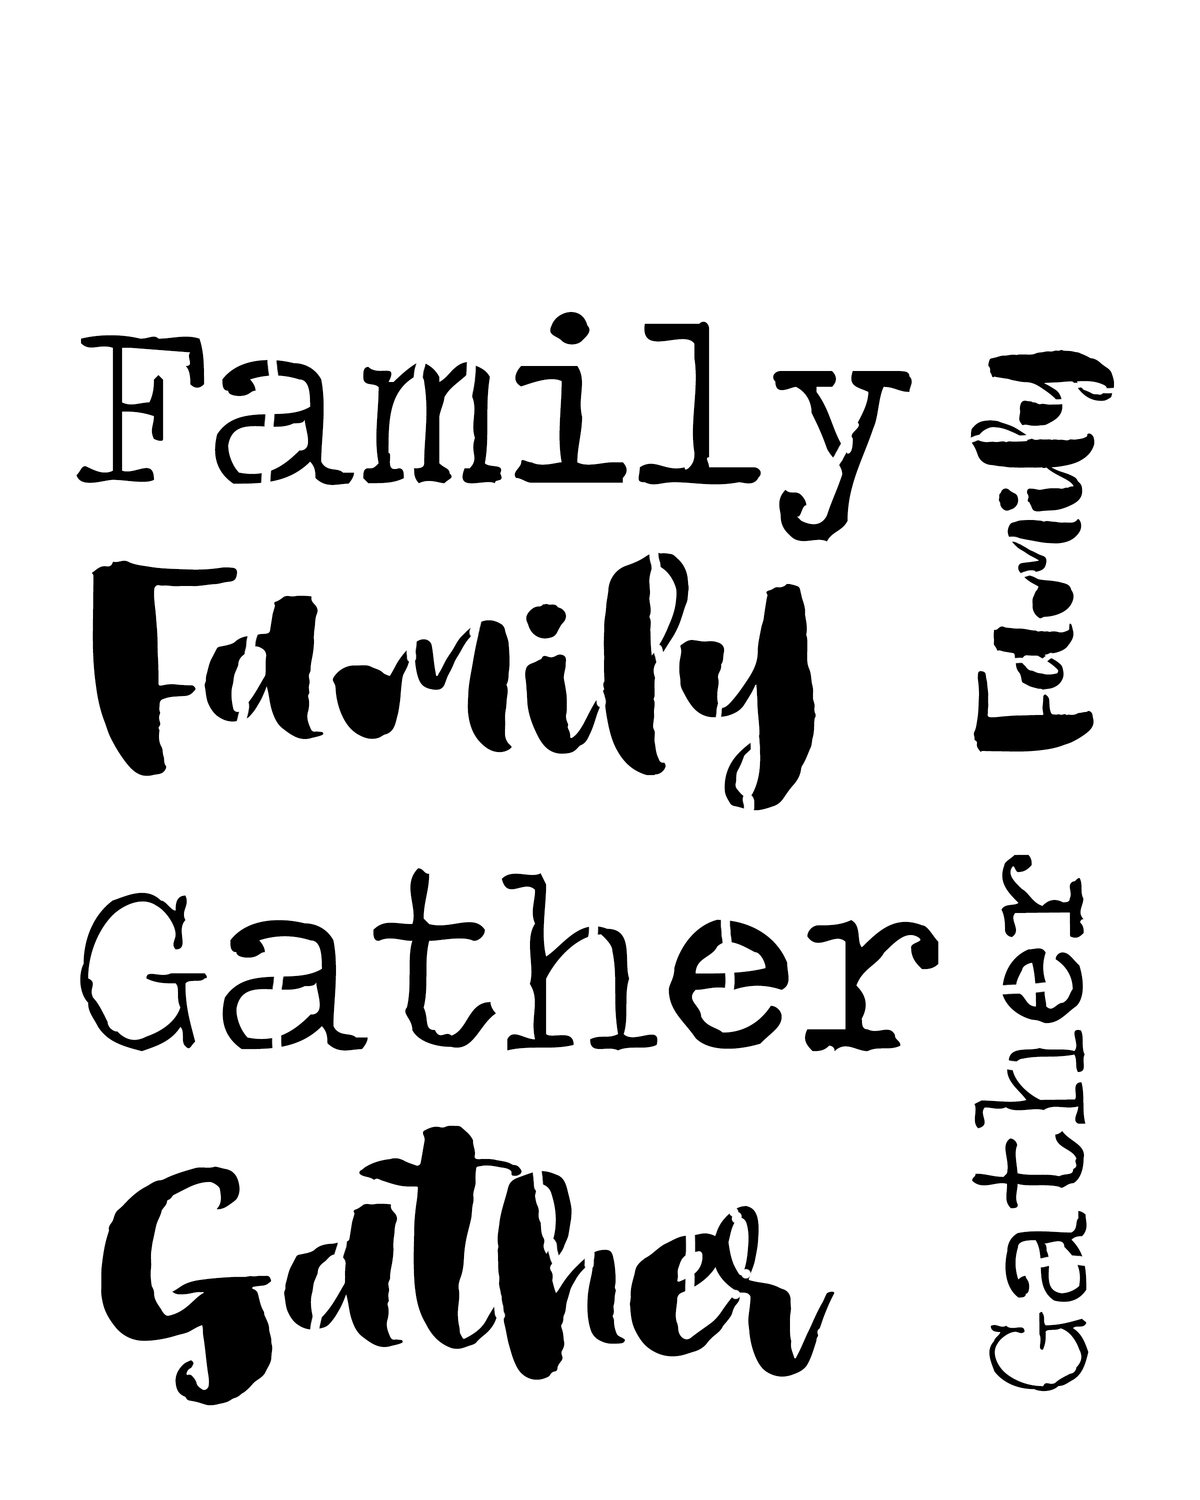 Gather family words stencil